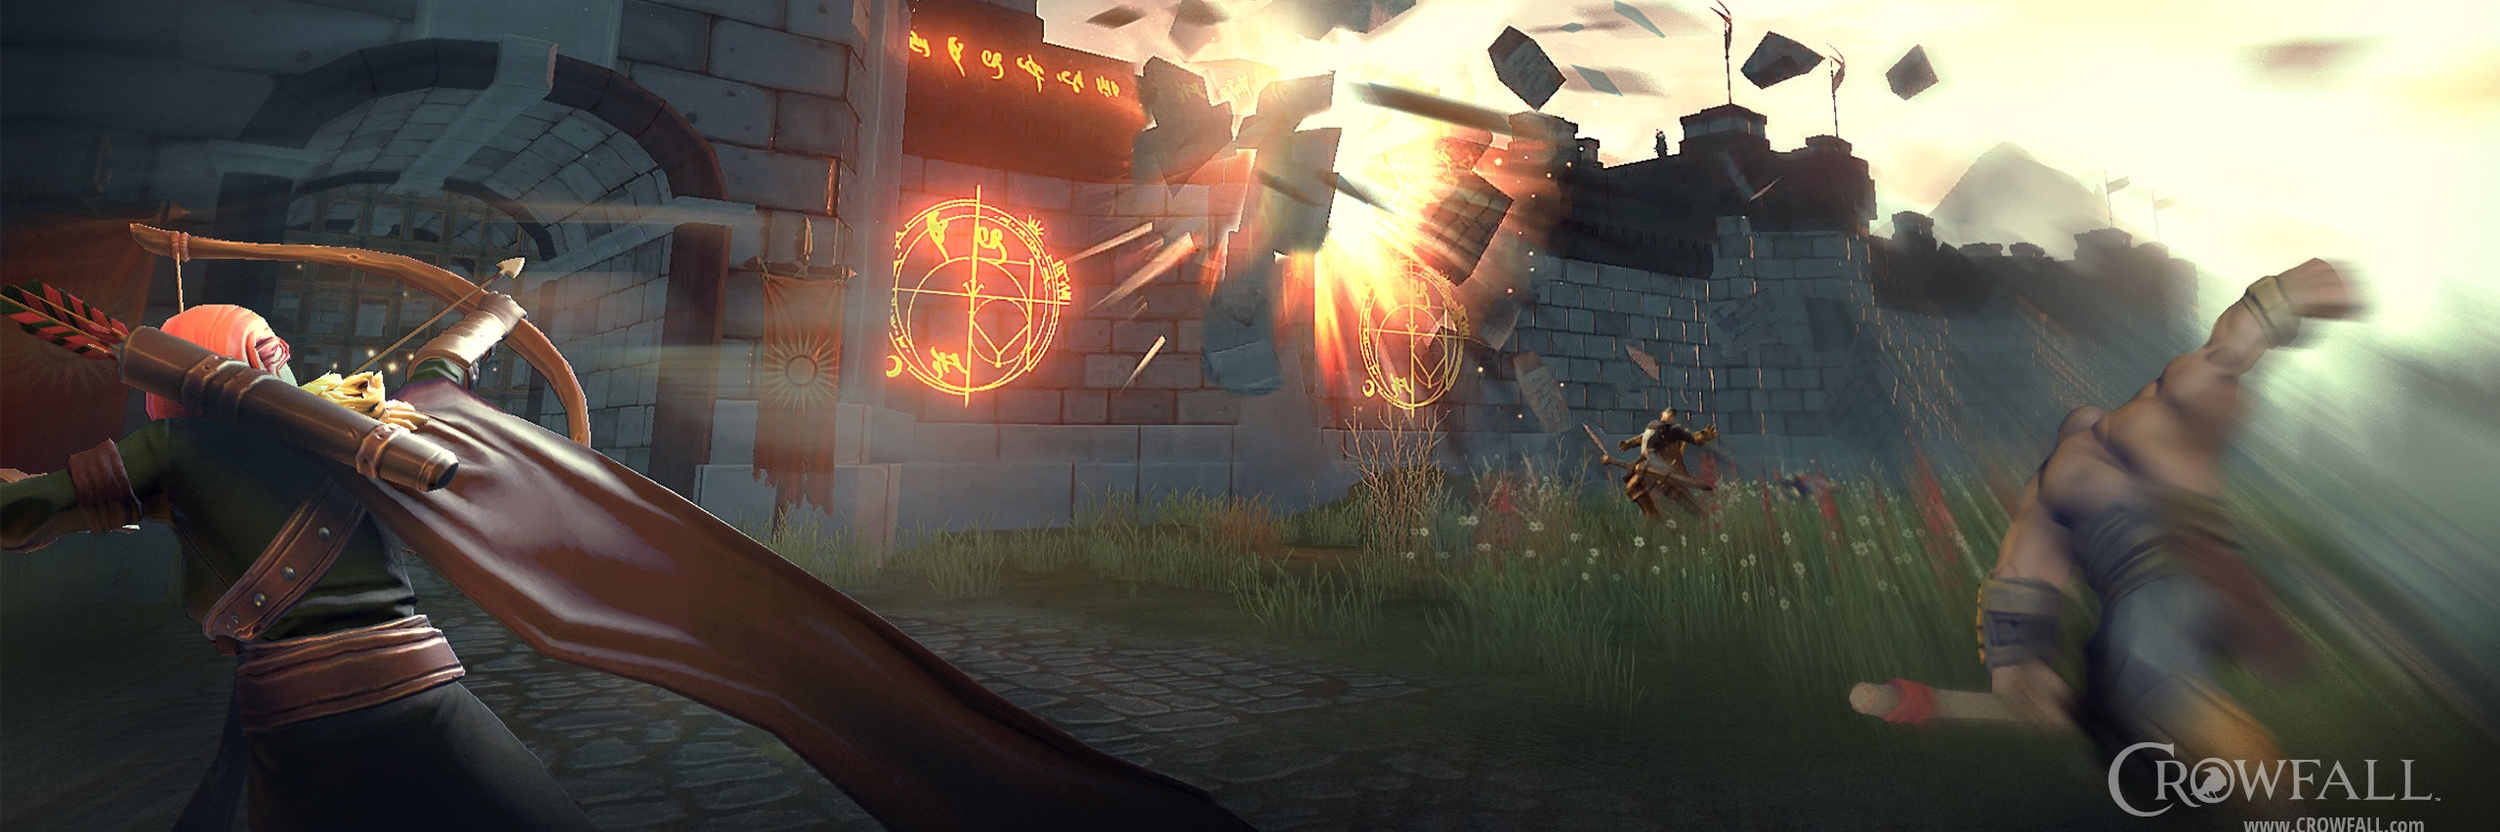 Project - — Crowfall.